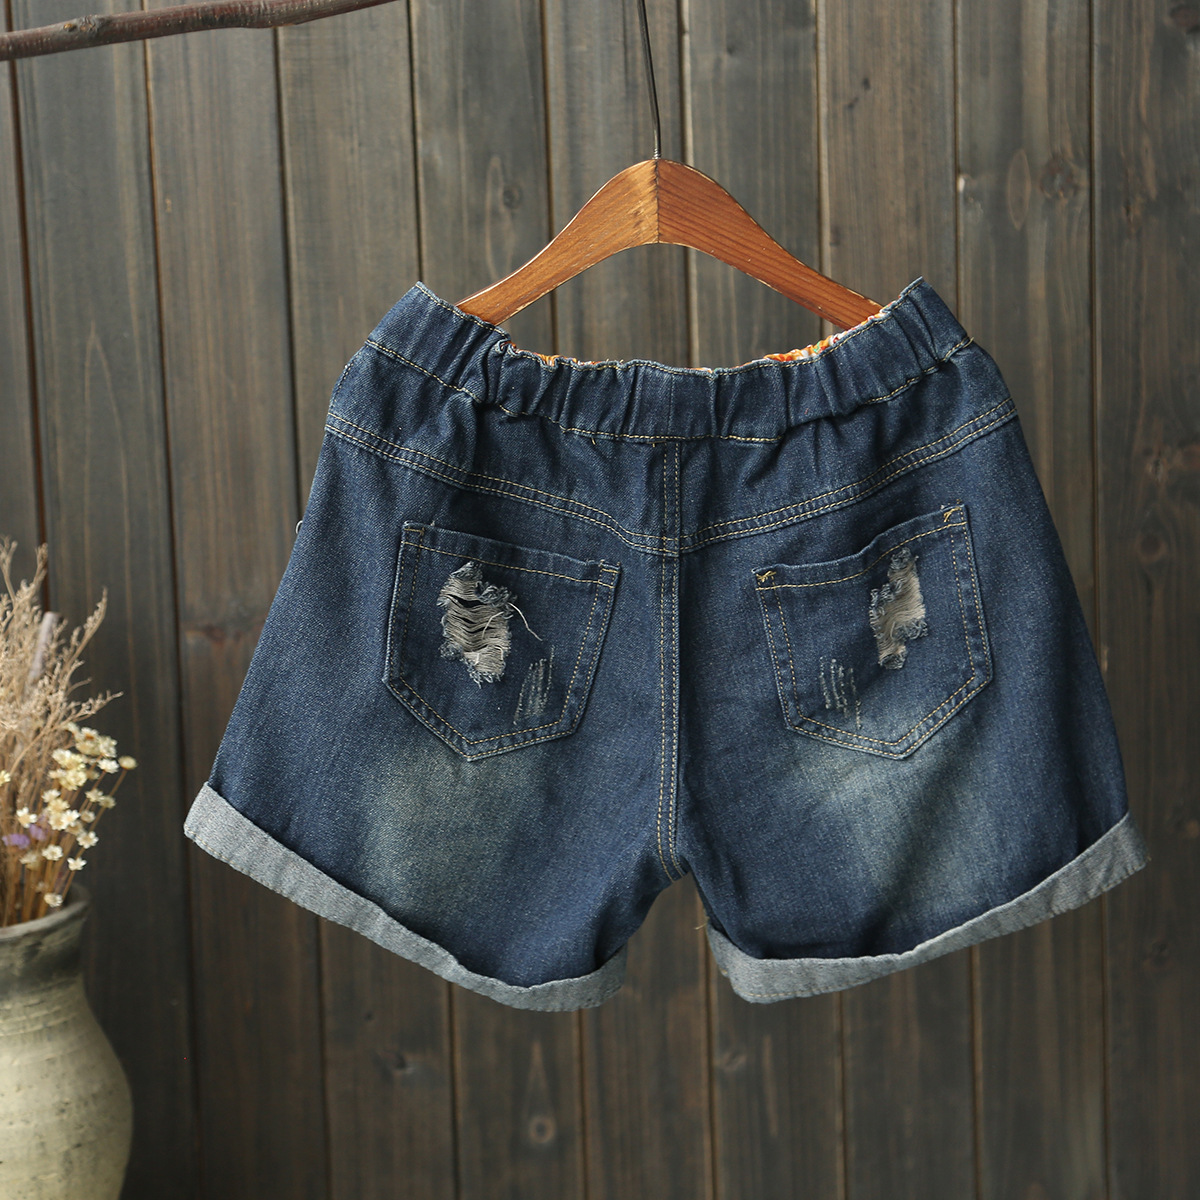 [Retro Cotton Linen] Crimping Denim Shorts With Holes Small Flower Embroidered High-waisted 2018 Summer New Style WOMEN'S Dress